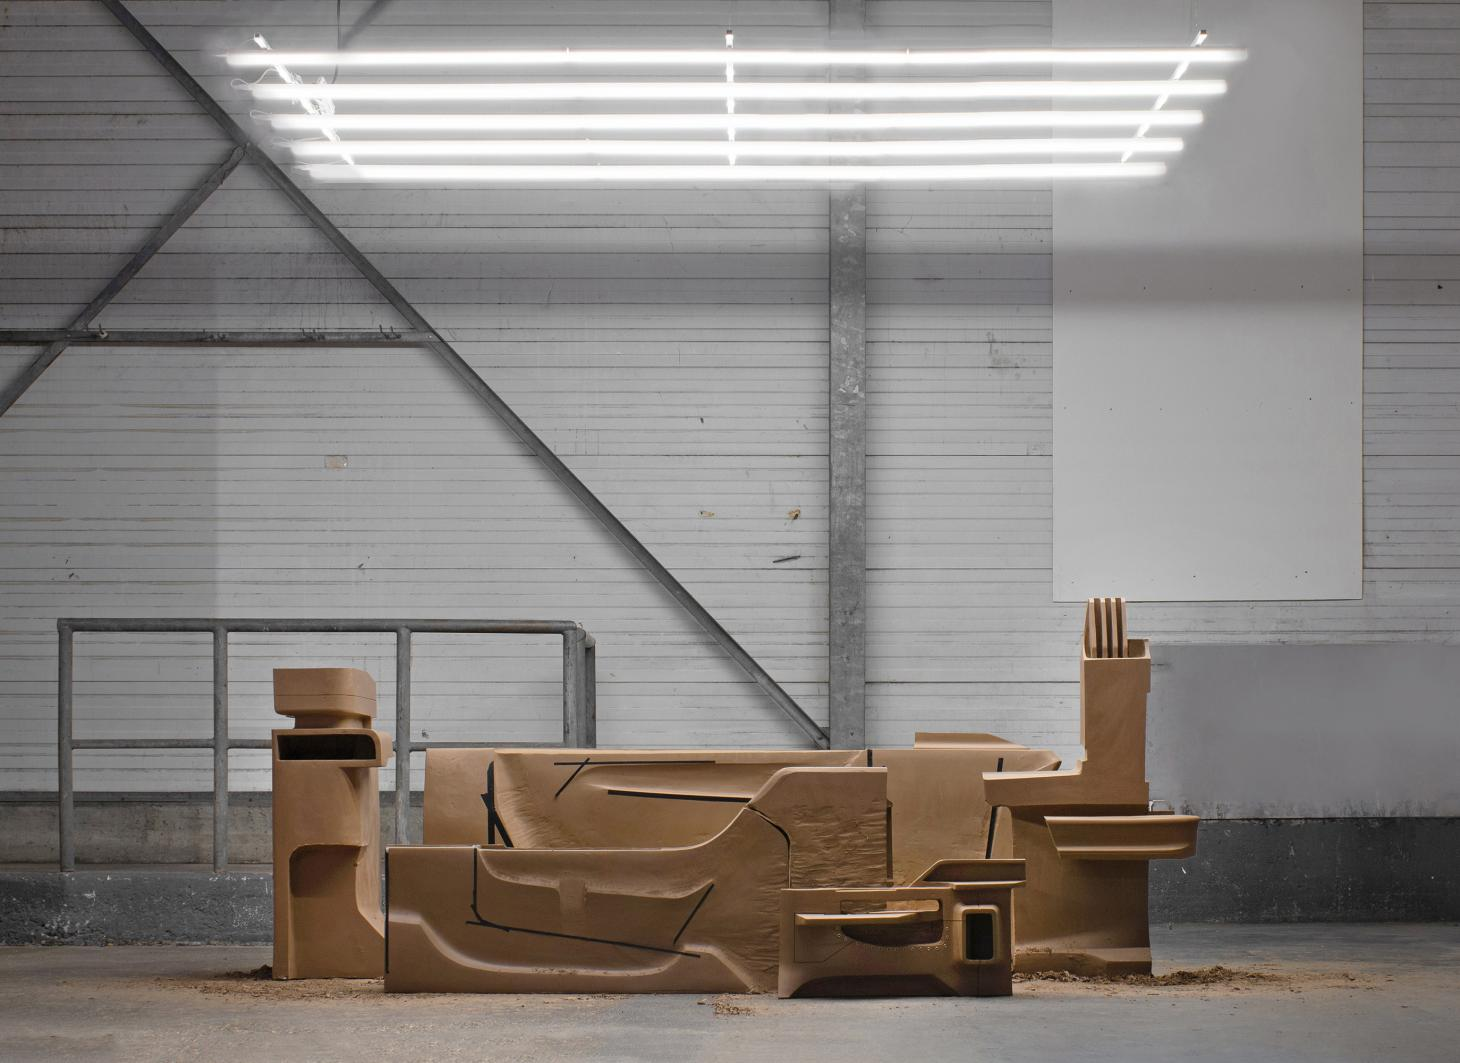 Installation of clay structures in warehouse-style space by Johanna Seelemann